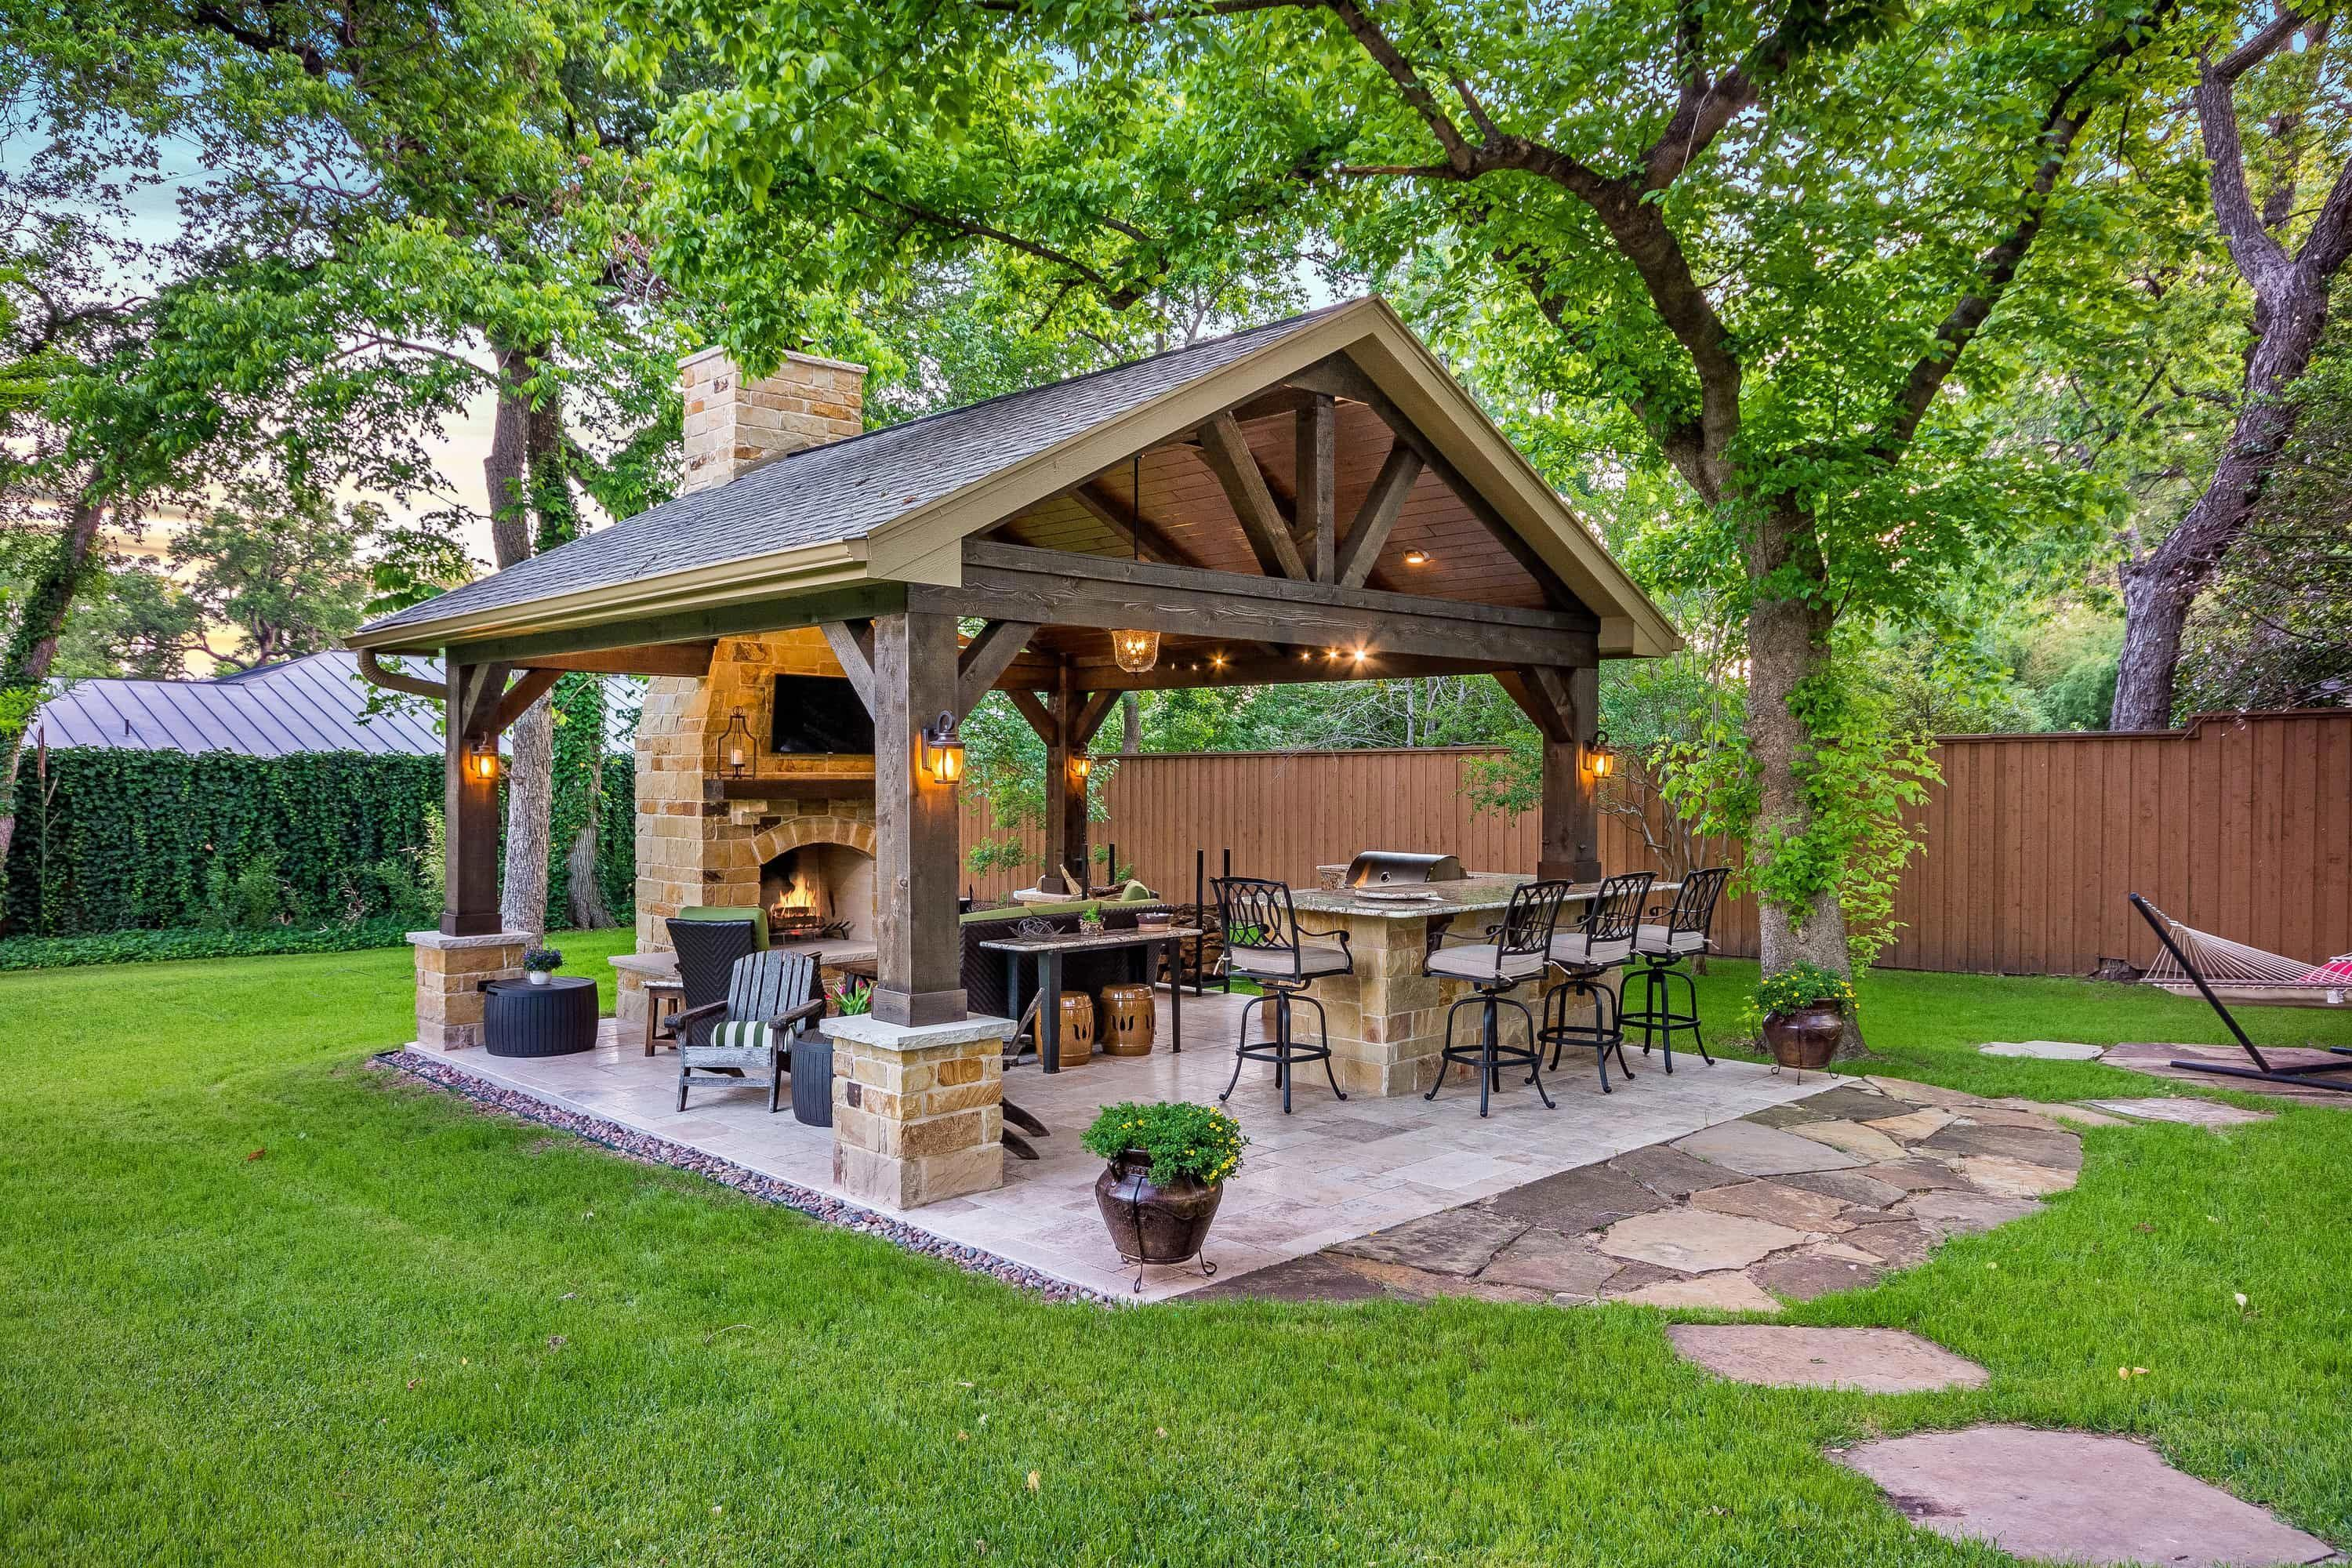 This Freestanding Covered Patio With An Outdoor Kitchen And Fireplace Is The Perfect Retreat From The Constra Outdoor Patio Designs Patio Design Backyard Patio Outdoor kitchen covered patio